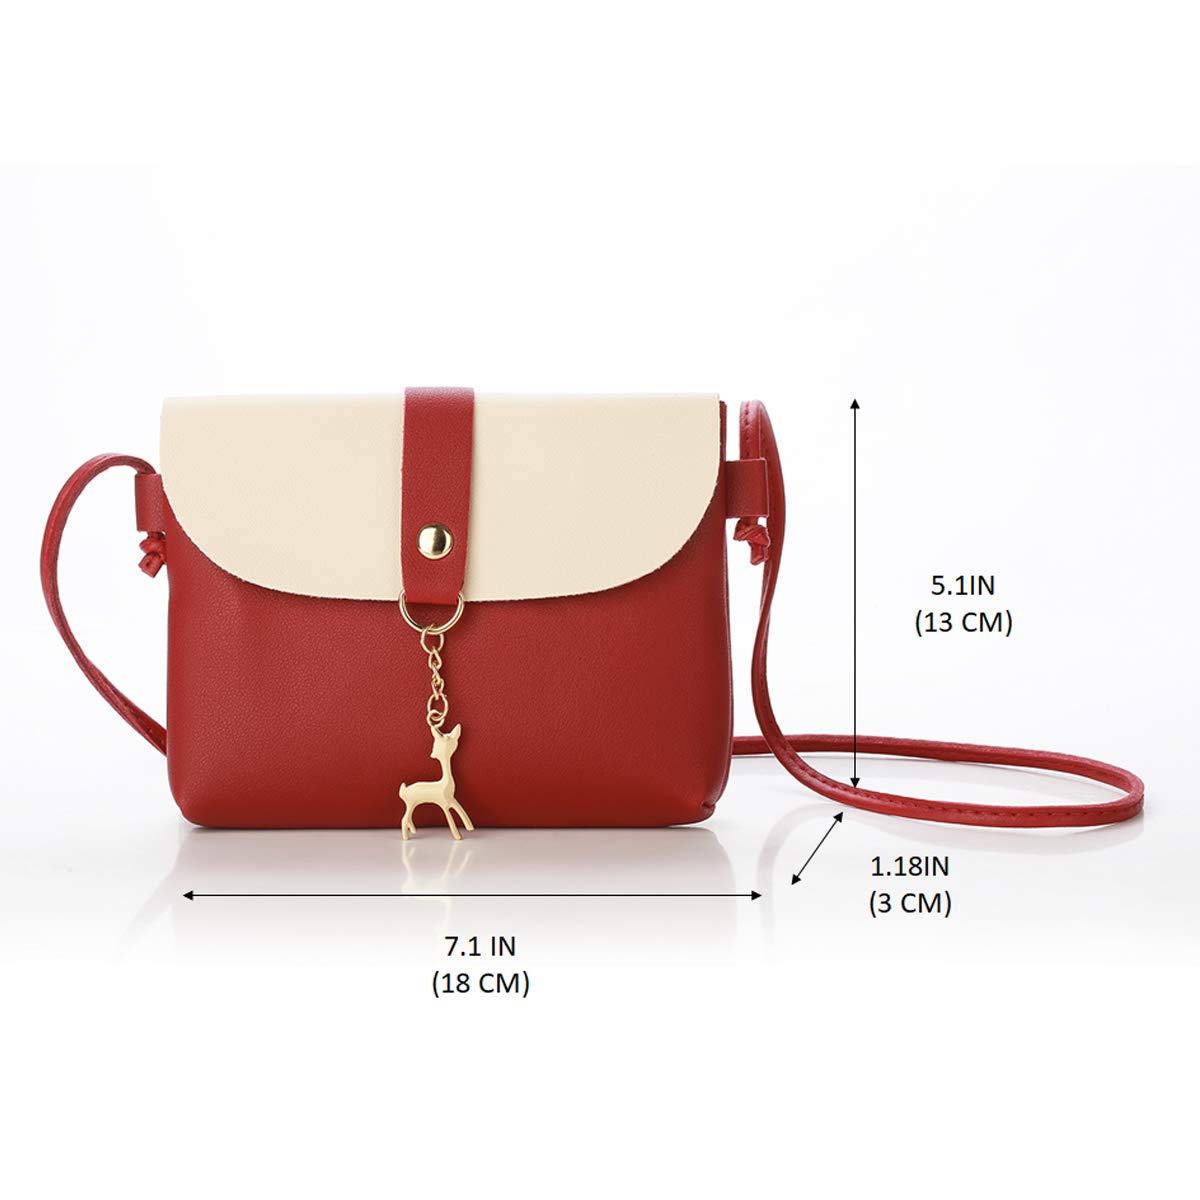 Small Crossbody Purse for Women With Pendant,PU Leather Crossbody Bag With Strap Cell Phone Bag for Girl,Red by Lanling (Image #2)